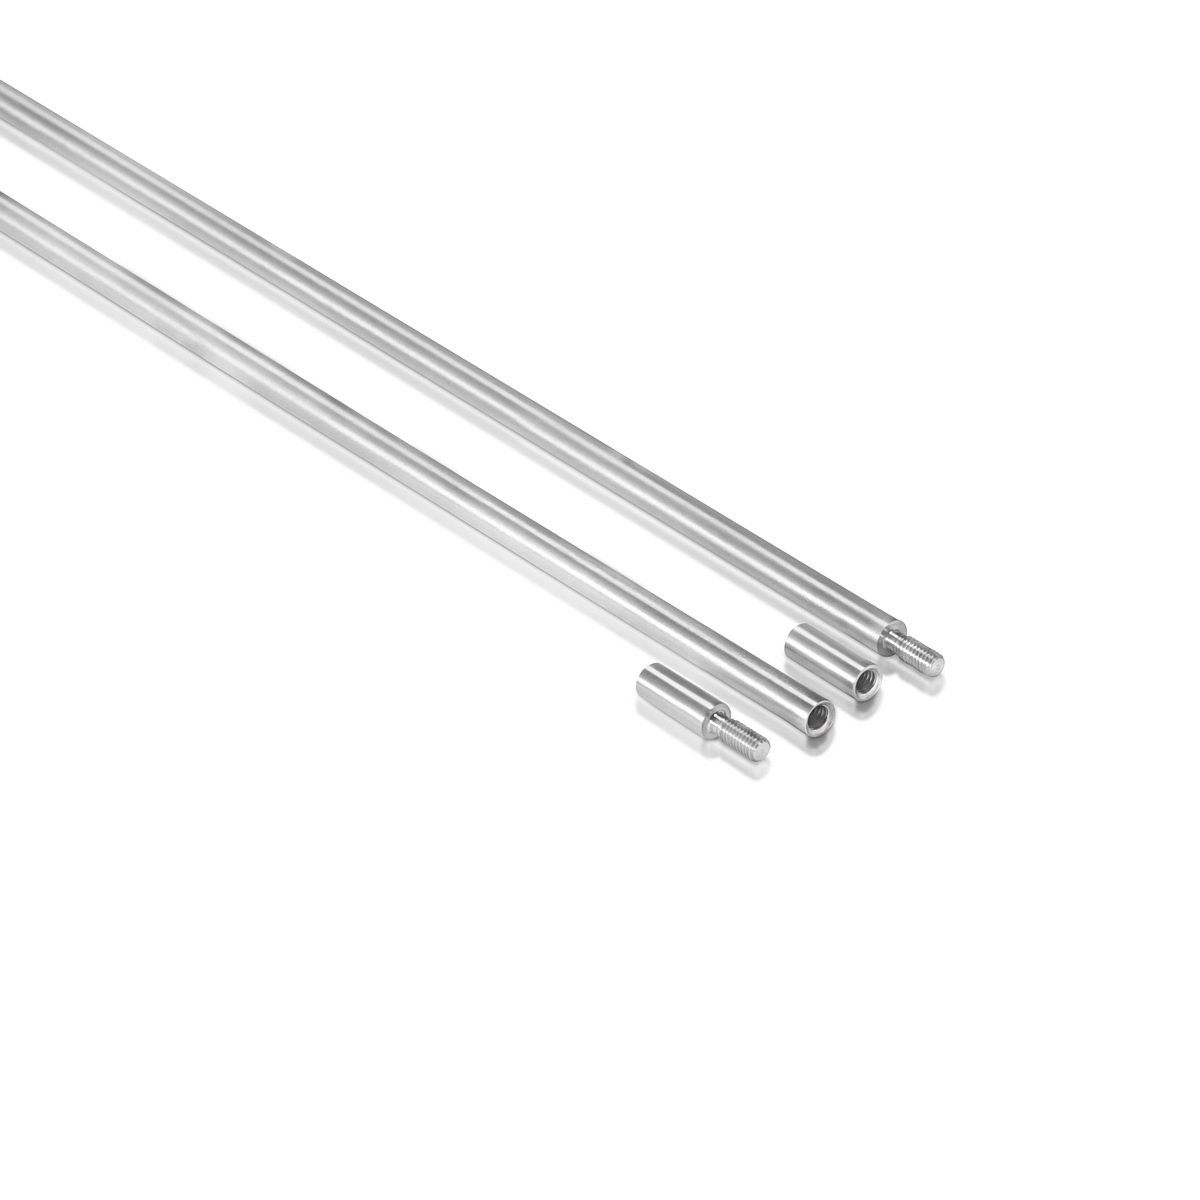 1/4'' Aluminum Clear Anodized Rod, Length: 36'' (Inside use only)